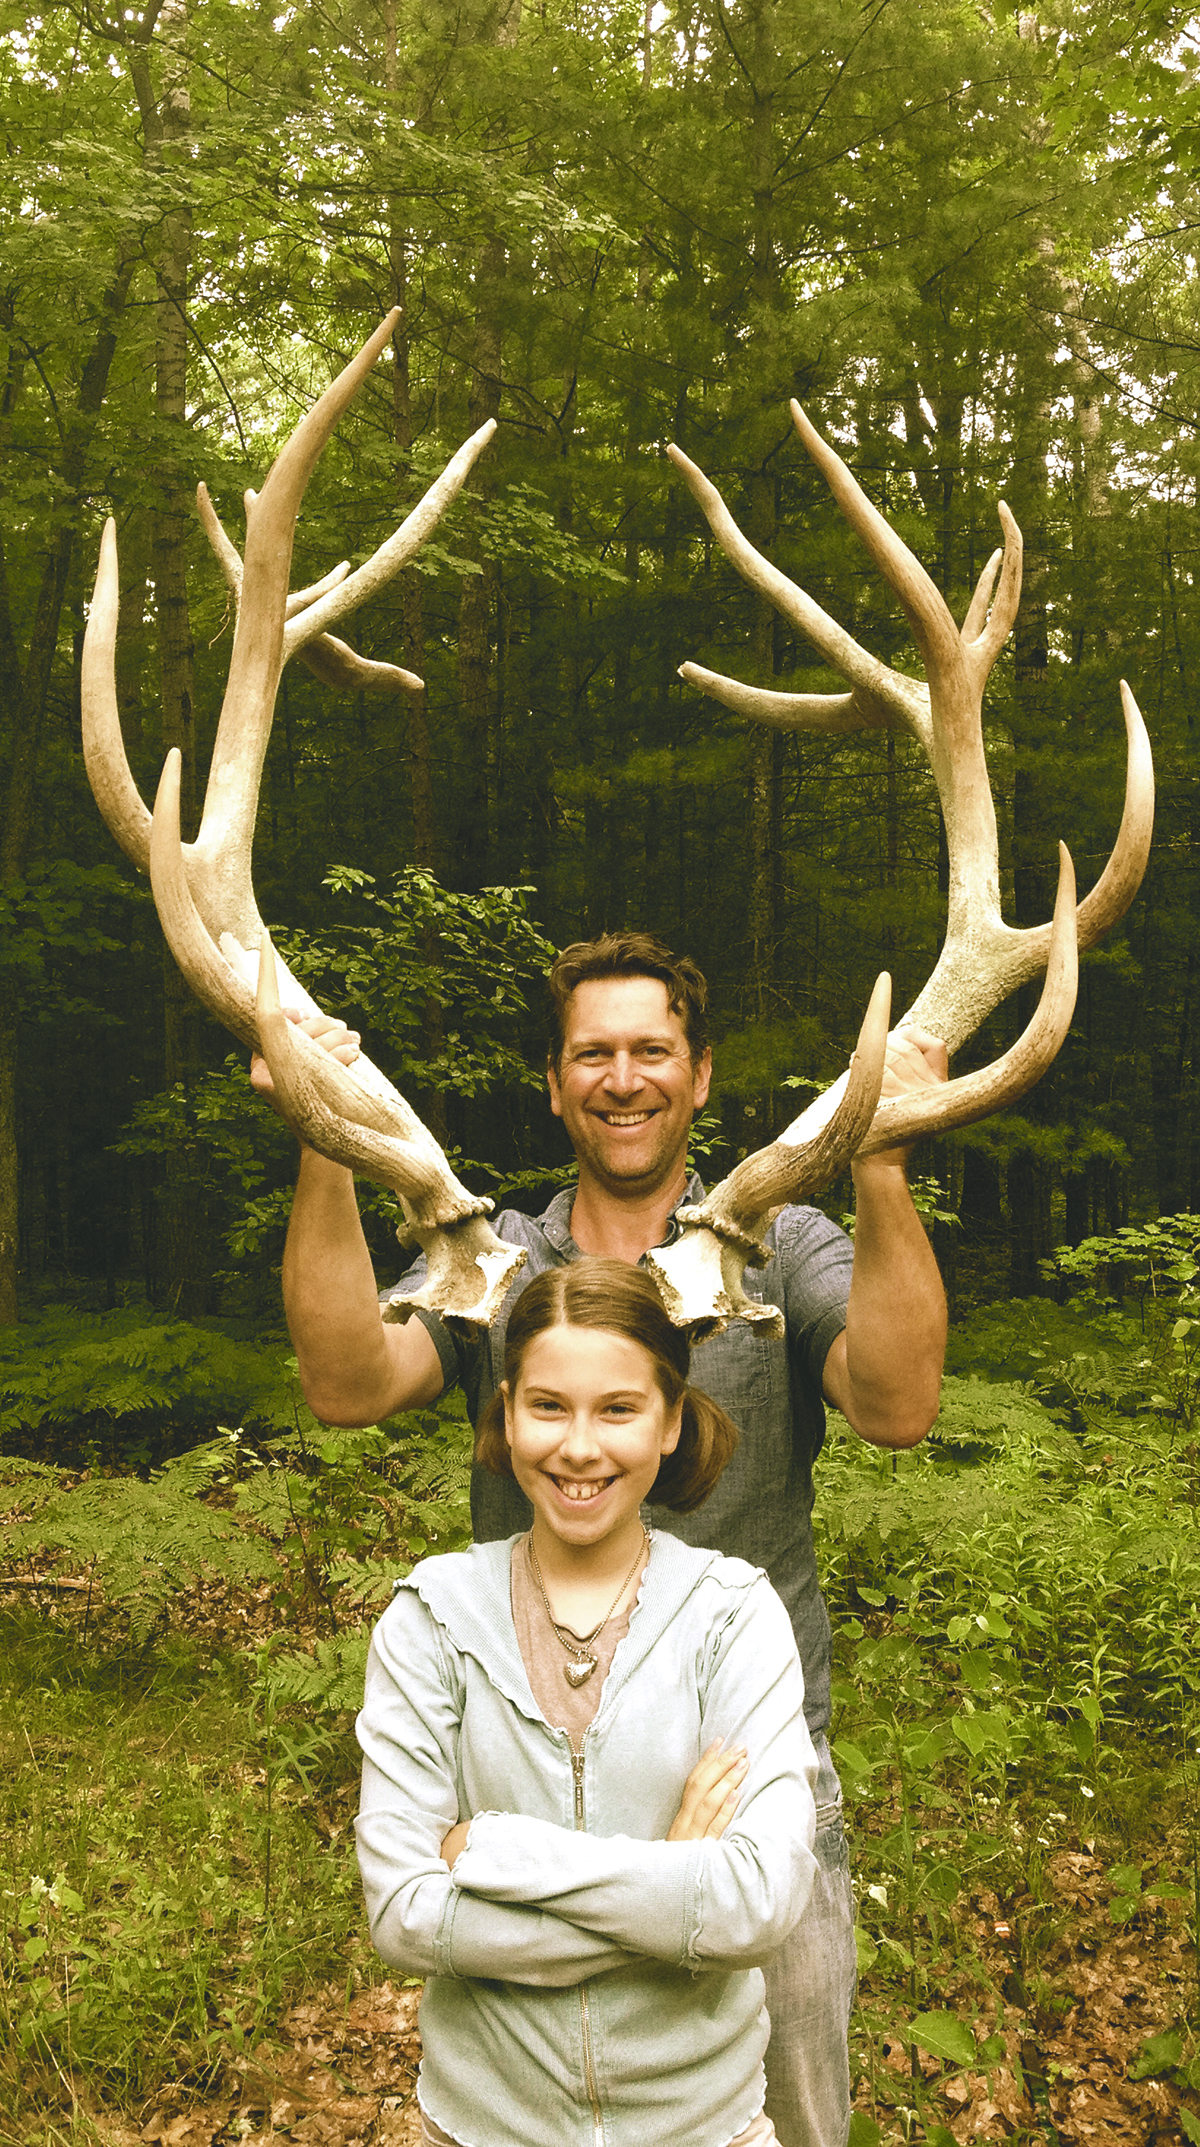 Sonja and David Moehle show the scale of their mysterious antlers. Photo courtesy of Amy Daniels Moehle.